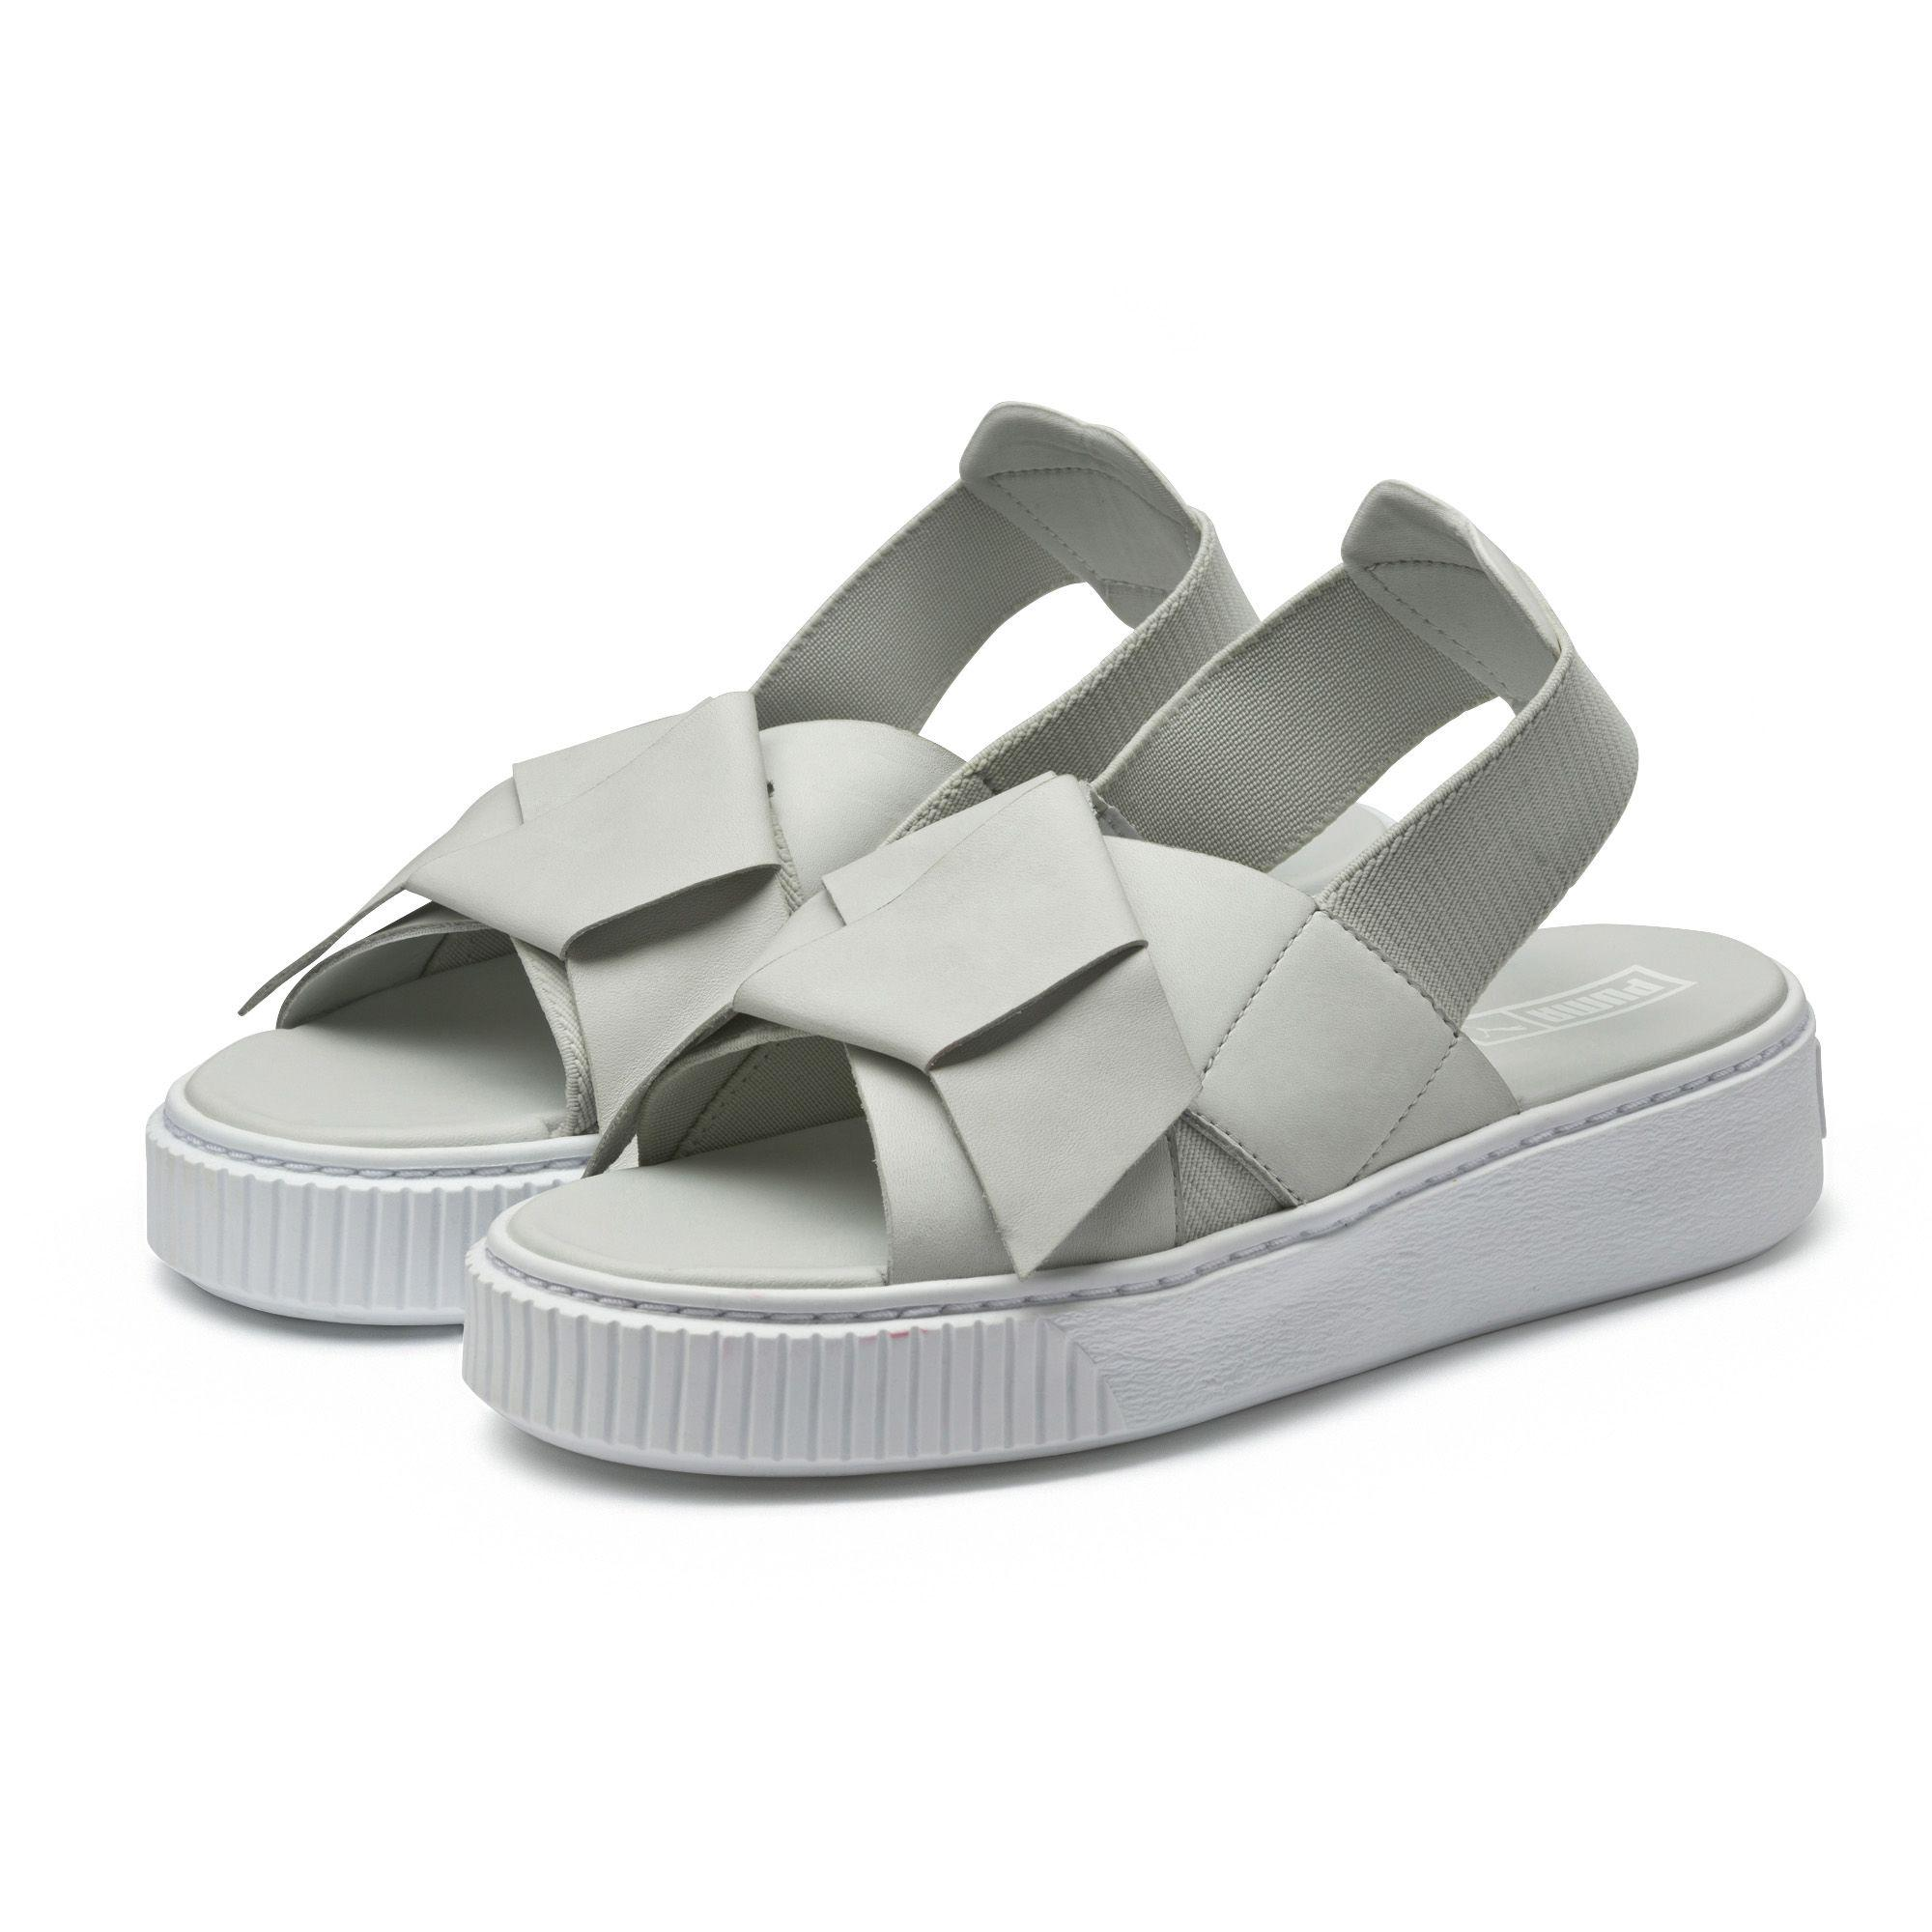 Lyst - PUMA Platform Leather Women s Sandals in Gray 844f374cd8